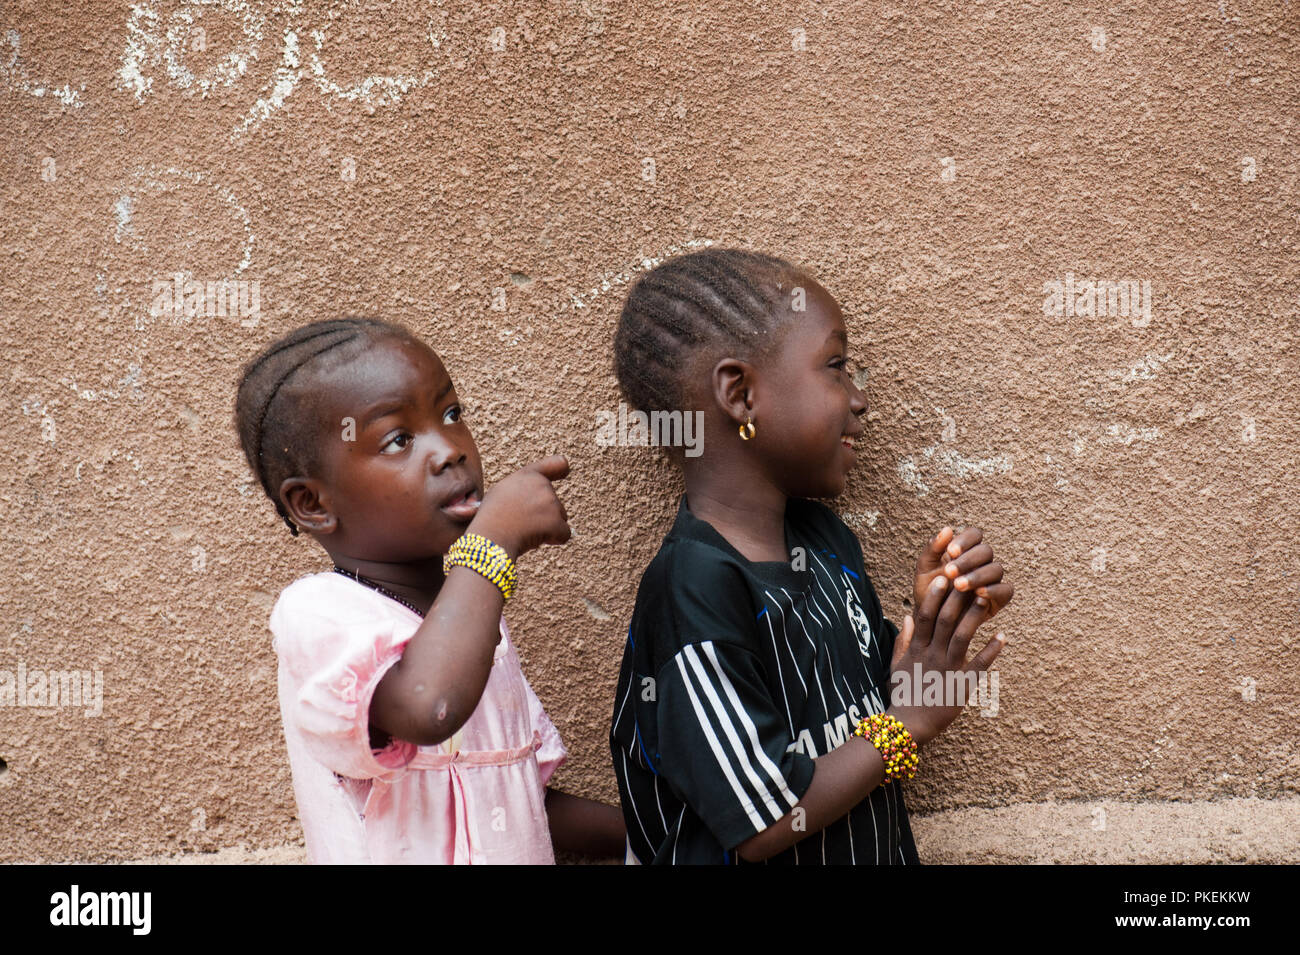 Mali Africa Circa August 2009 Two Black African Sisters Having Fun Living In A Rural Area Near Bamako Stock Photo Alamy